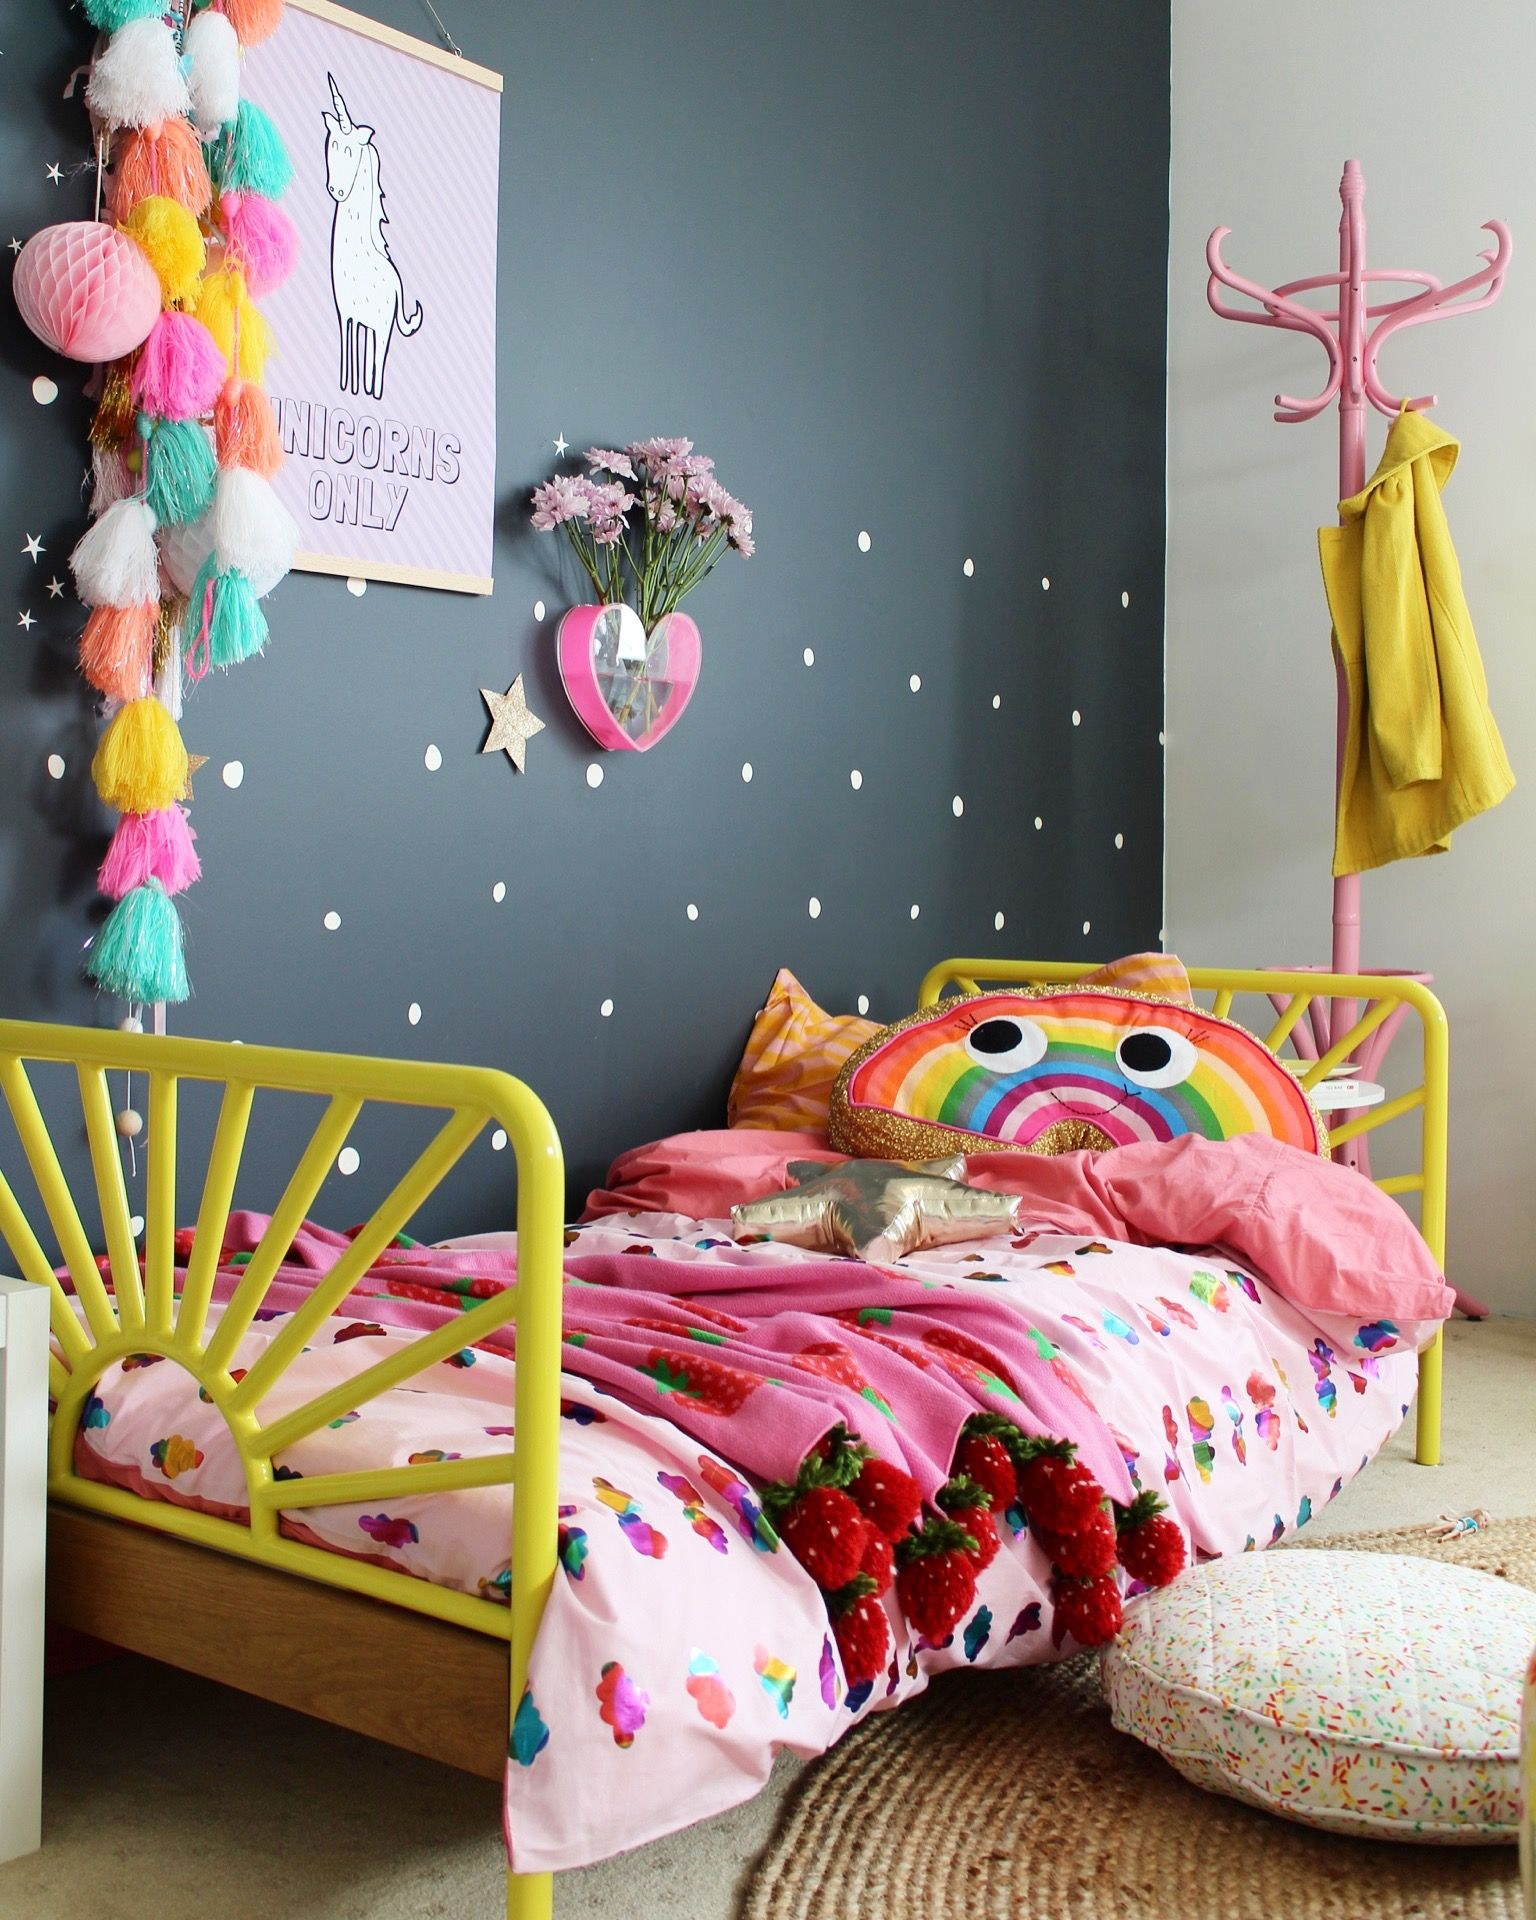 Kids Room Decor: 25+ Amazing Girls Room Decor Ideas For Teenagers